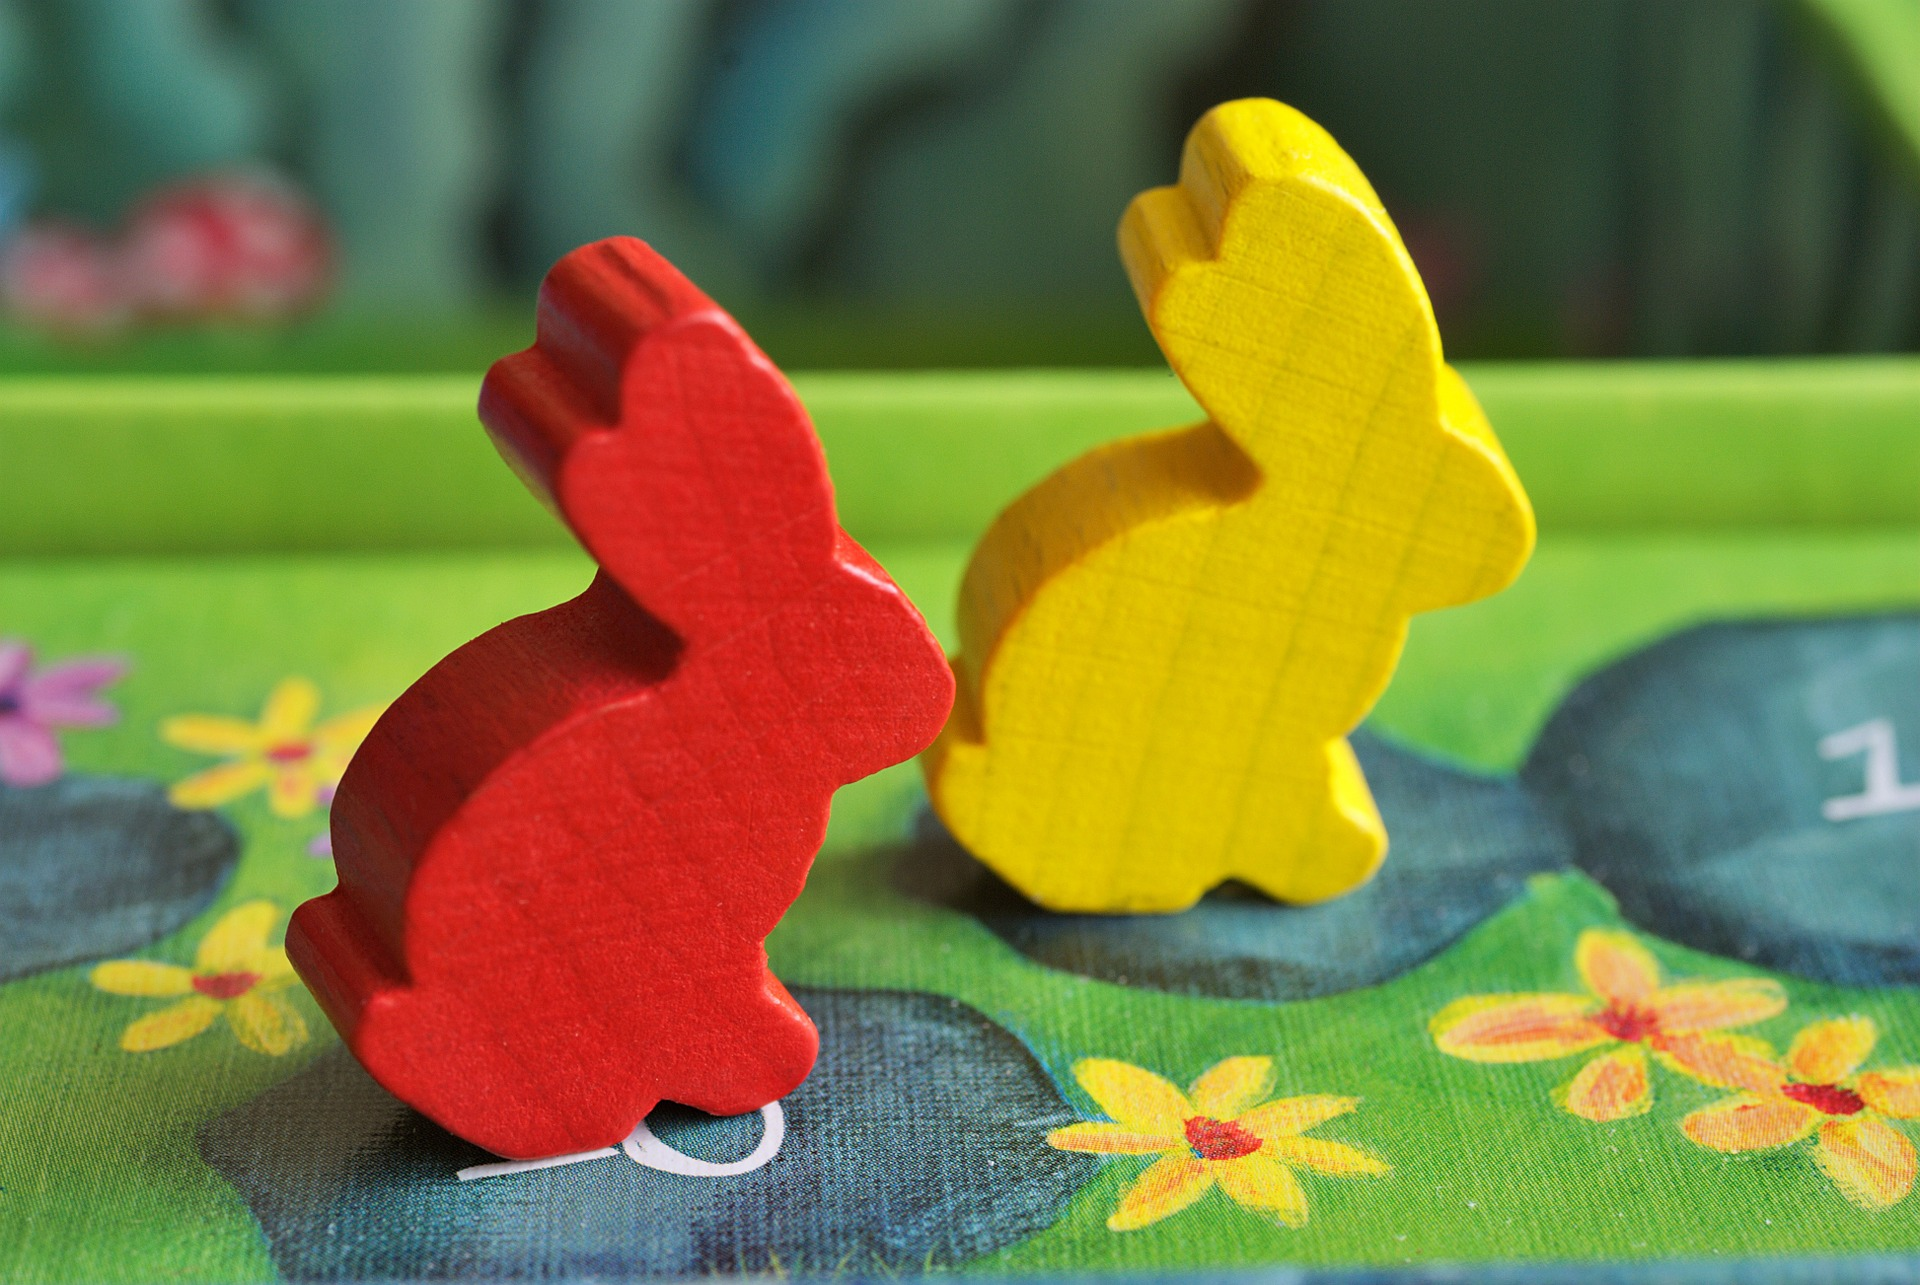 bunny meeples from a board game